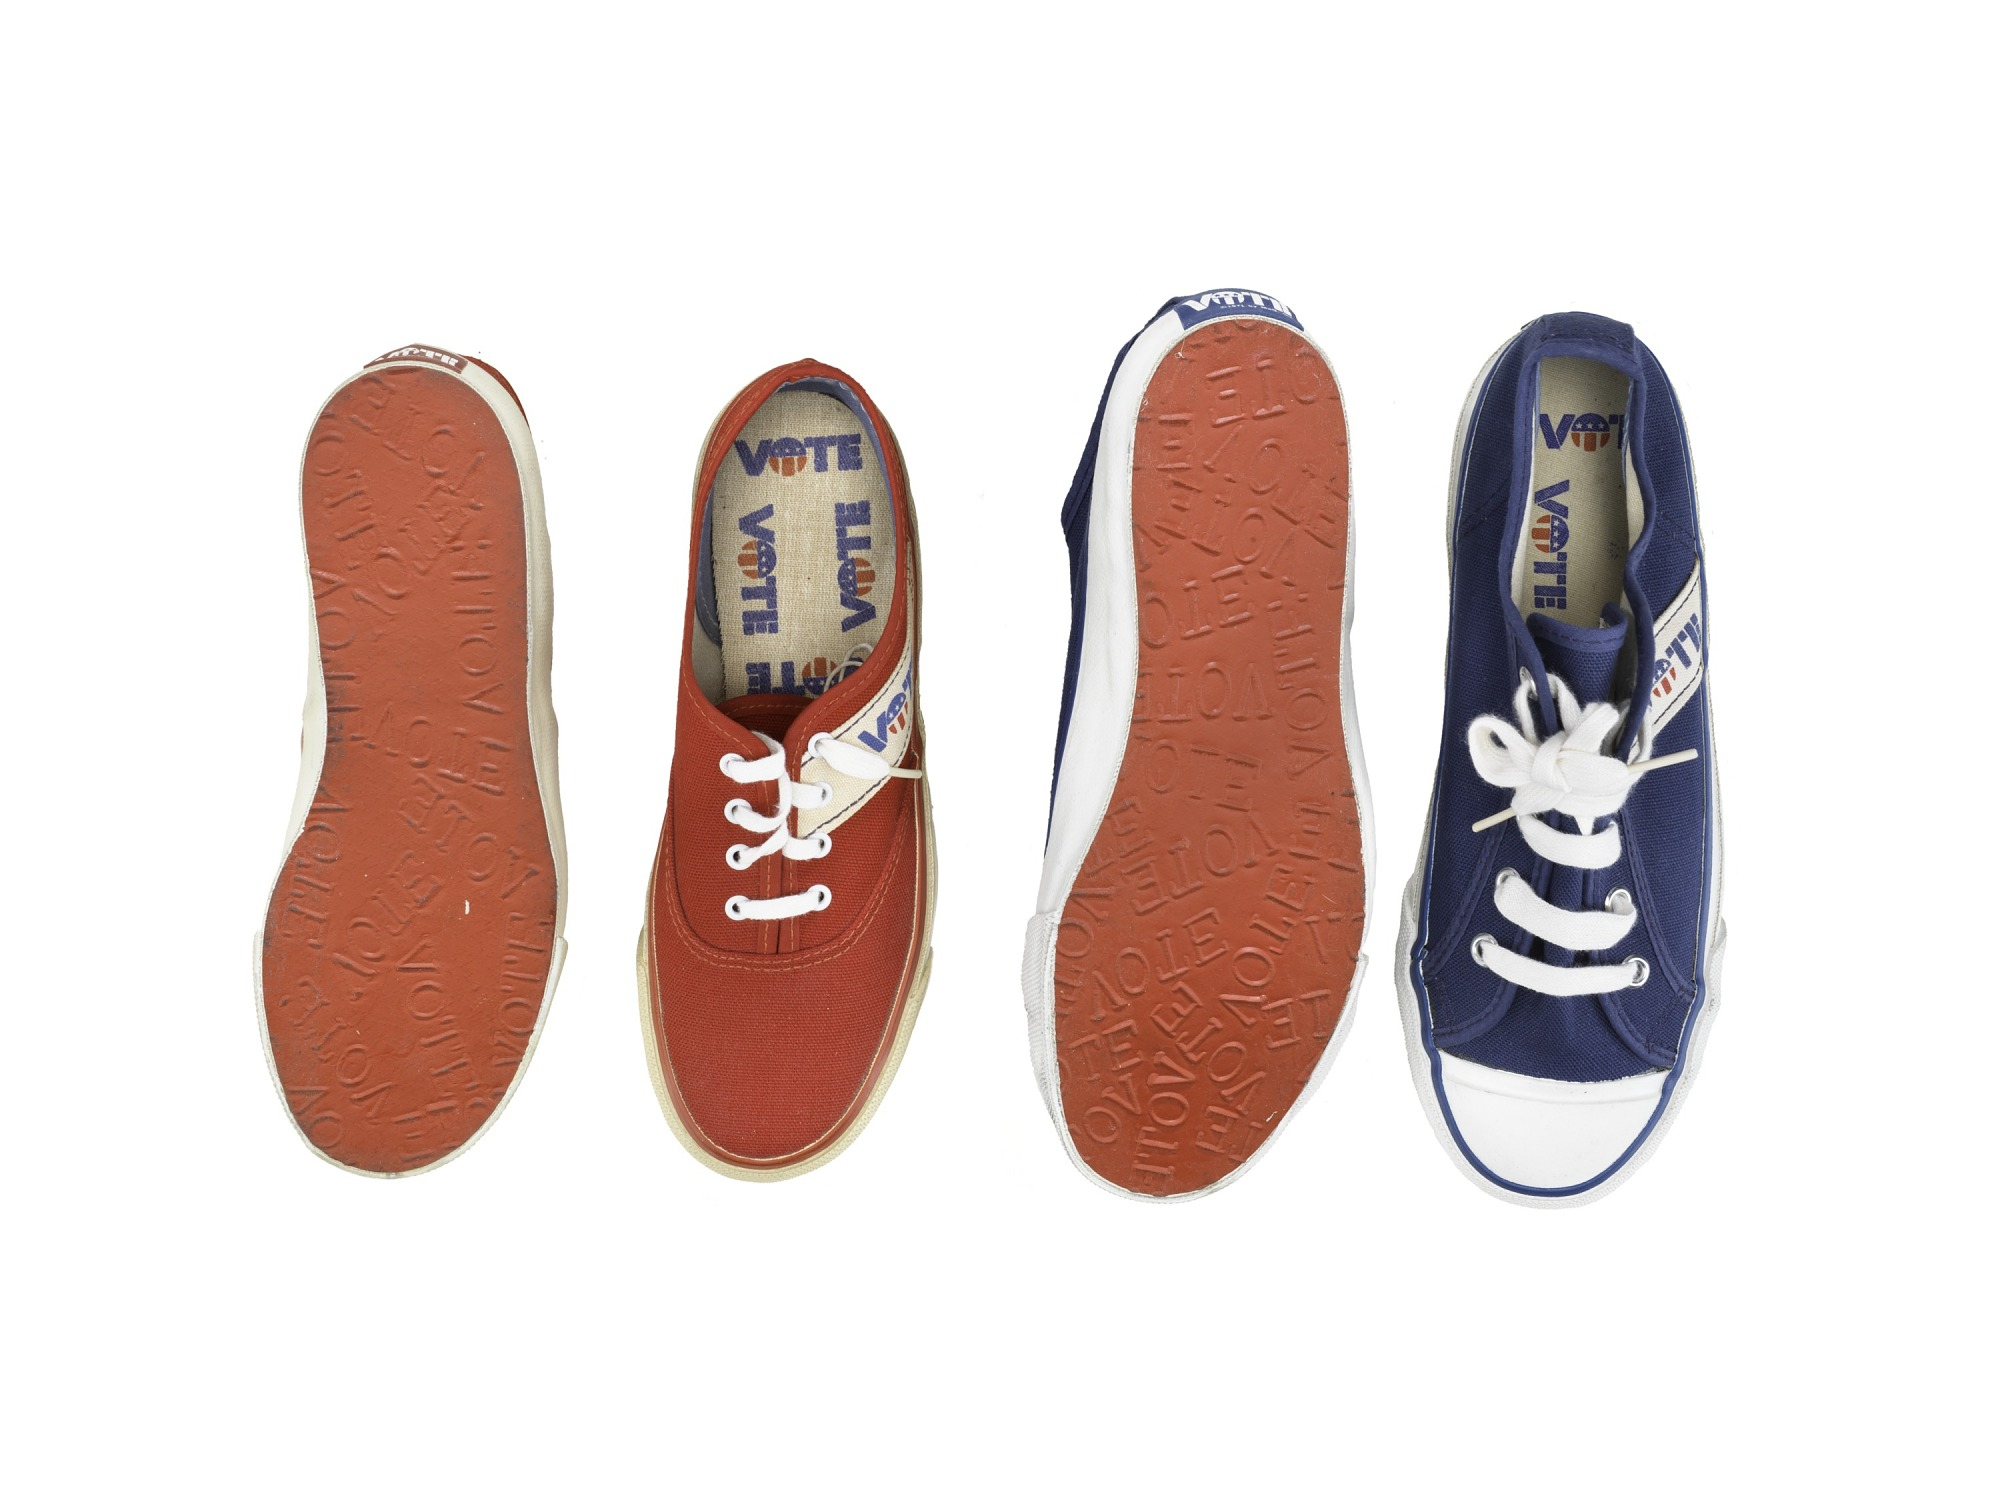 images for Youth Vote Shoes, 1970s